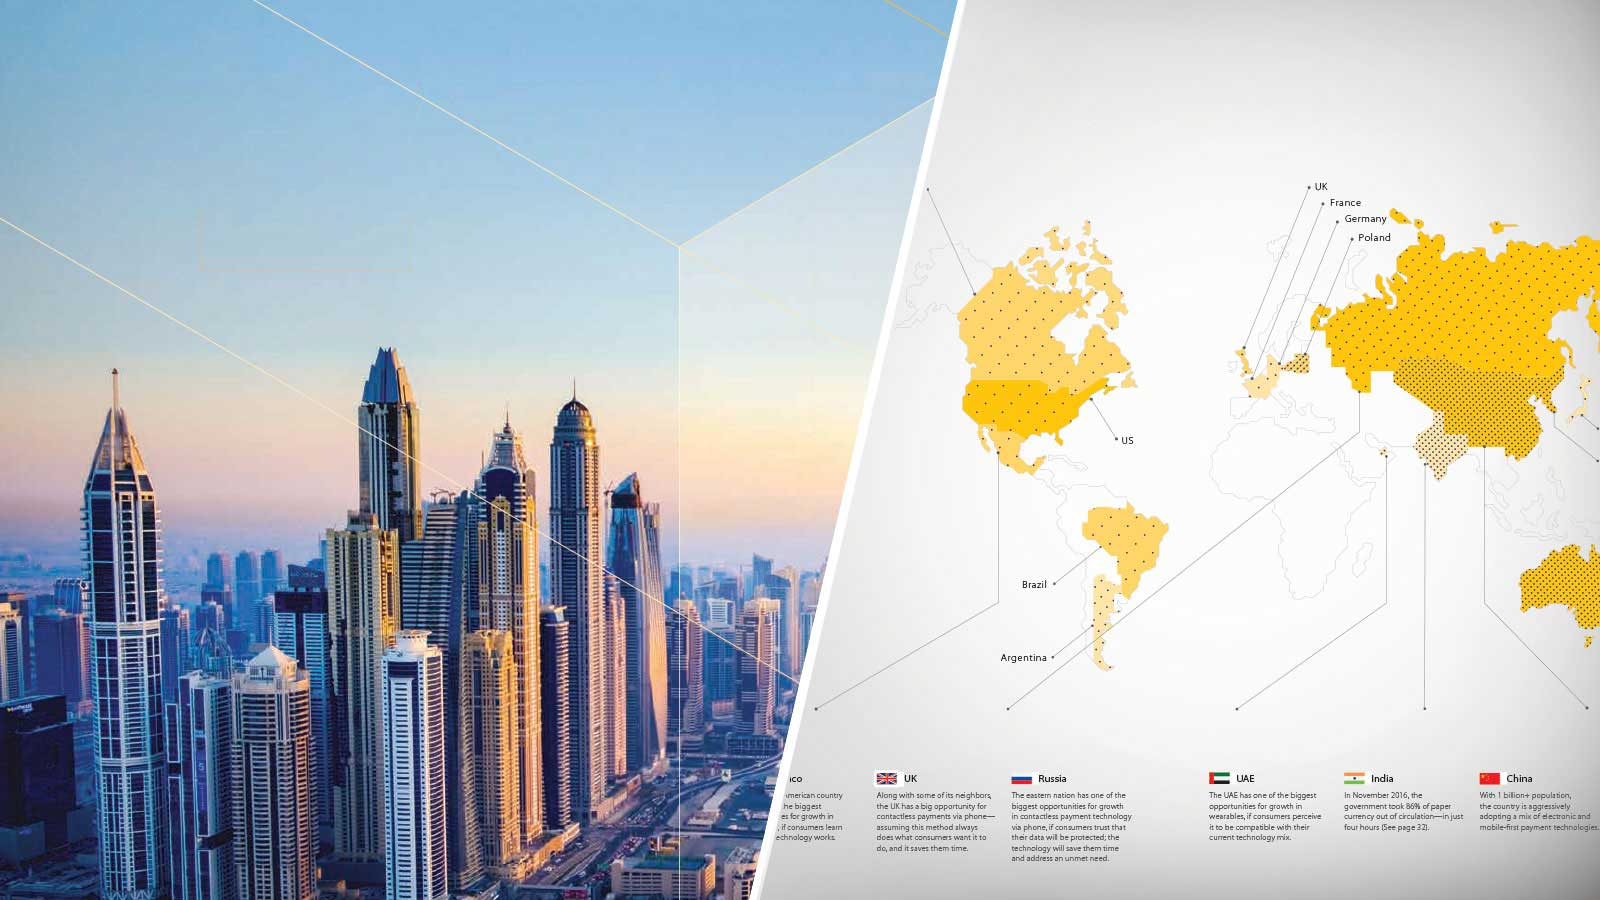 Composite: cityscape and partial world map identifying US, Brazil, Argentina, UK, France, Germany and Poland.